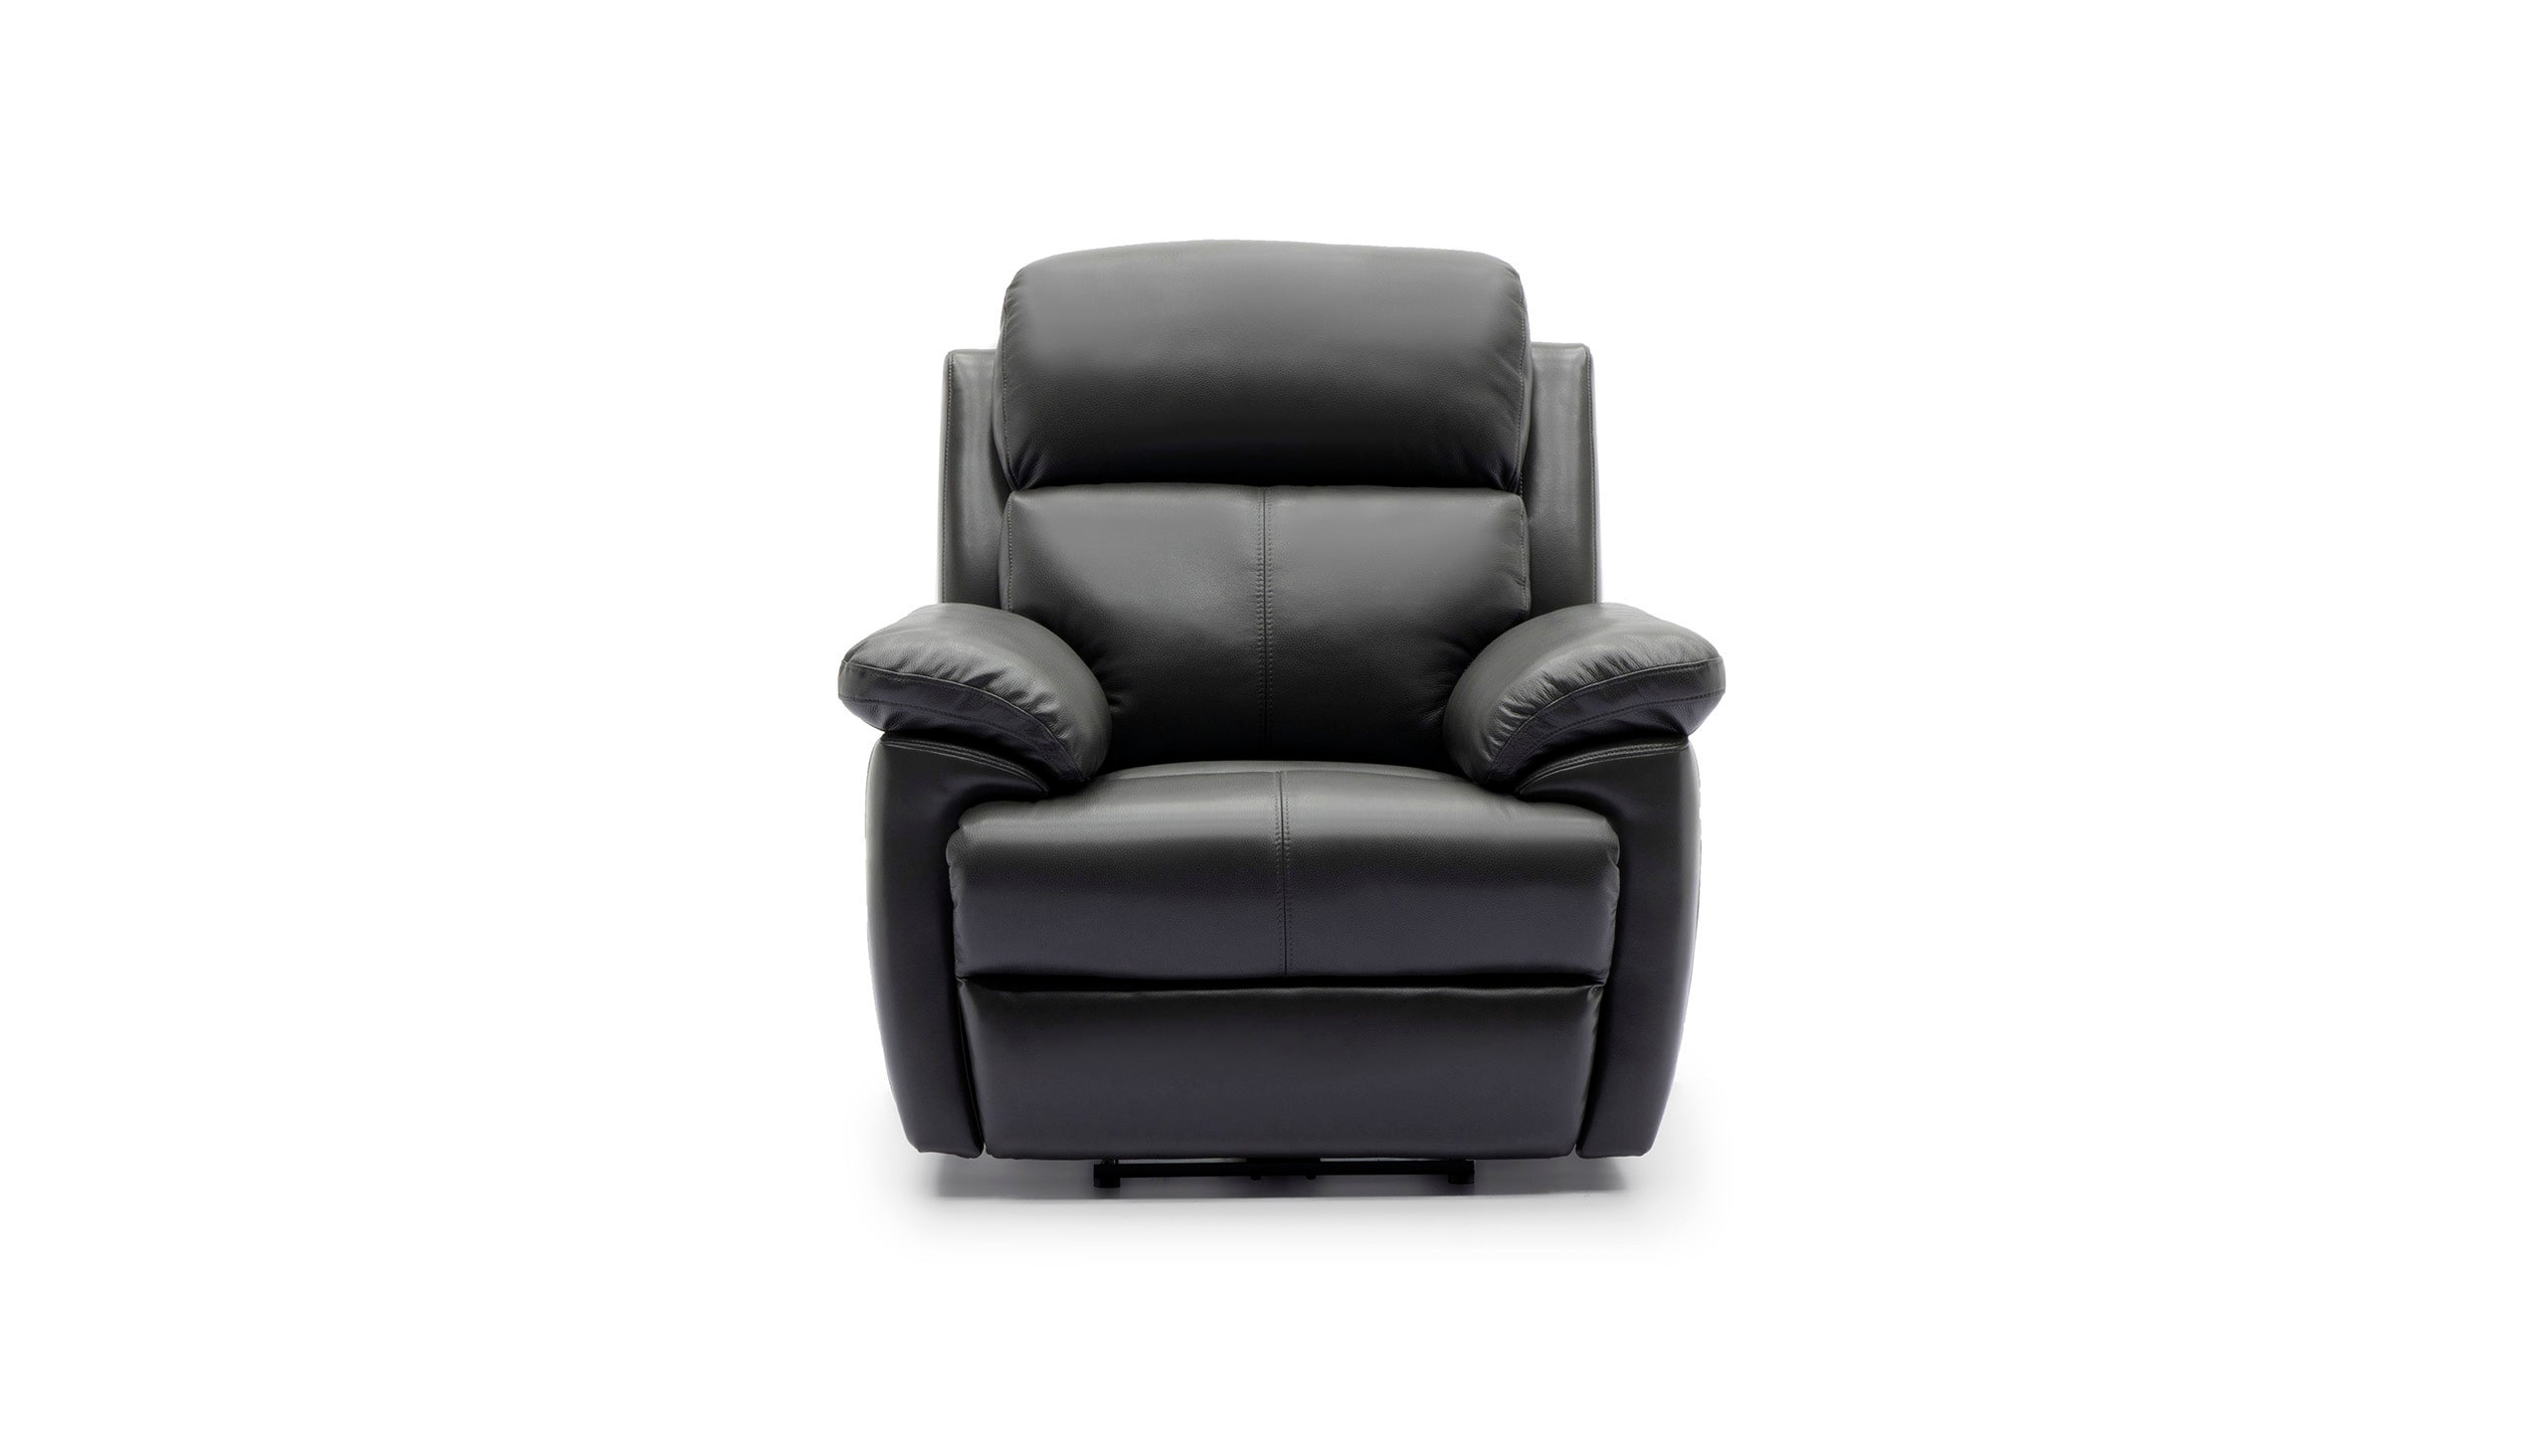 Blair Power Recliner Armchair with Power Headrest